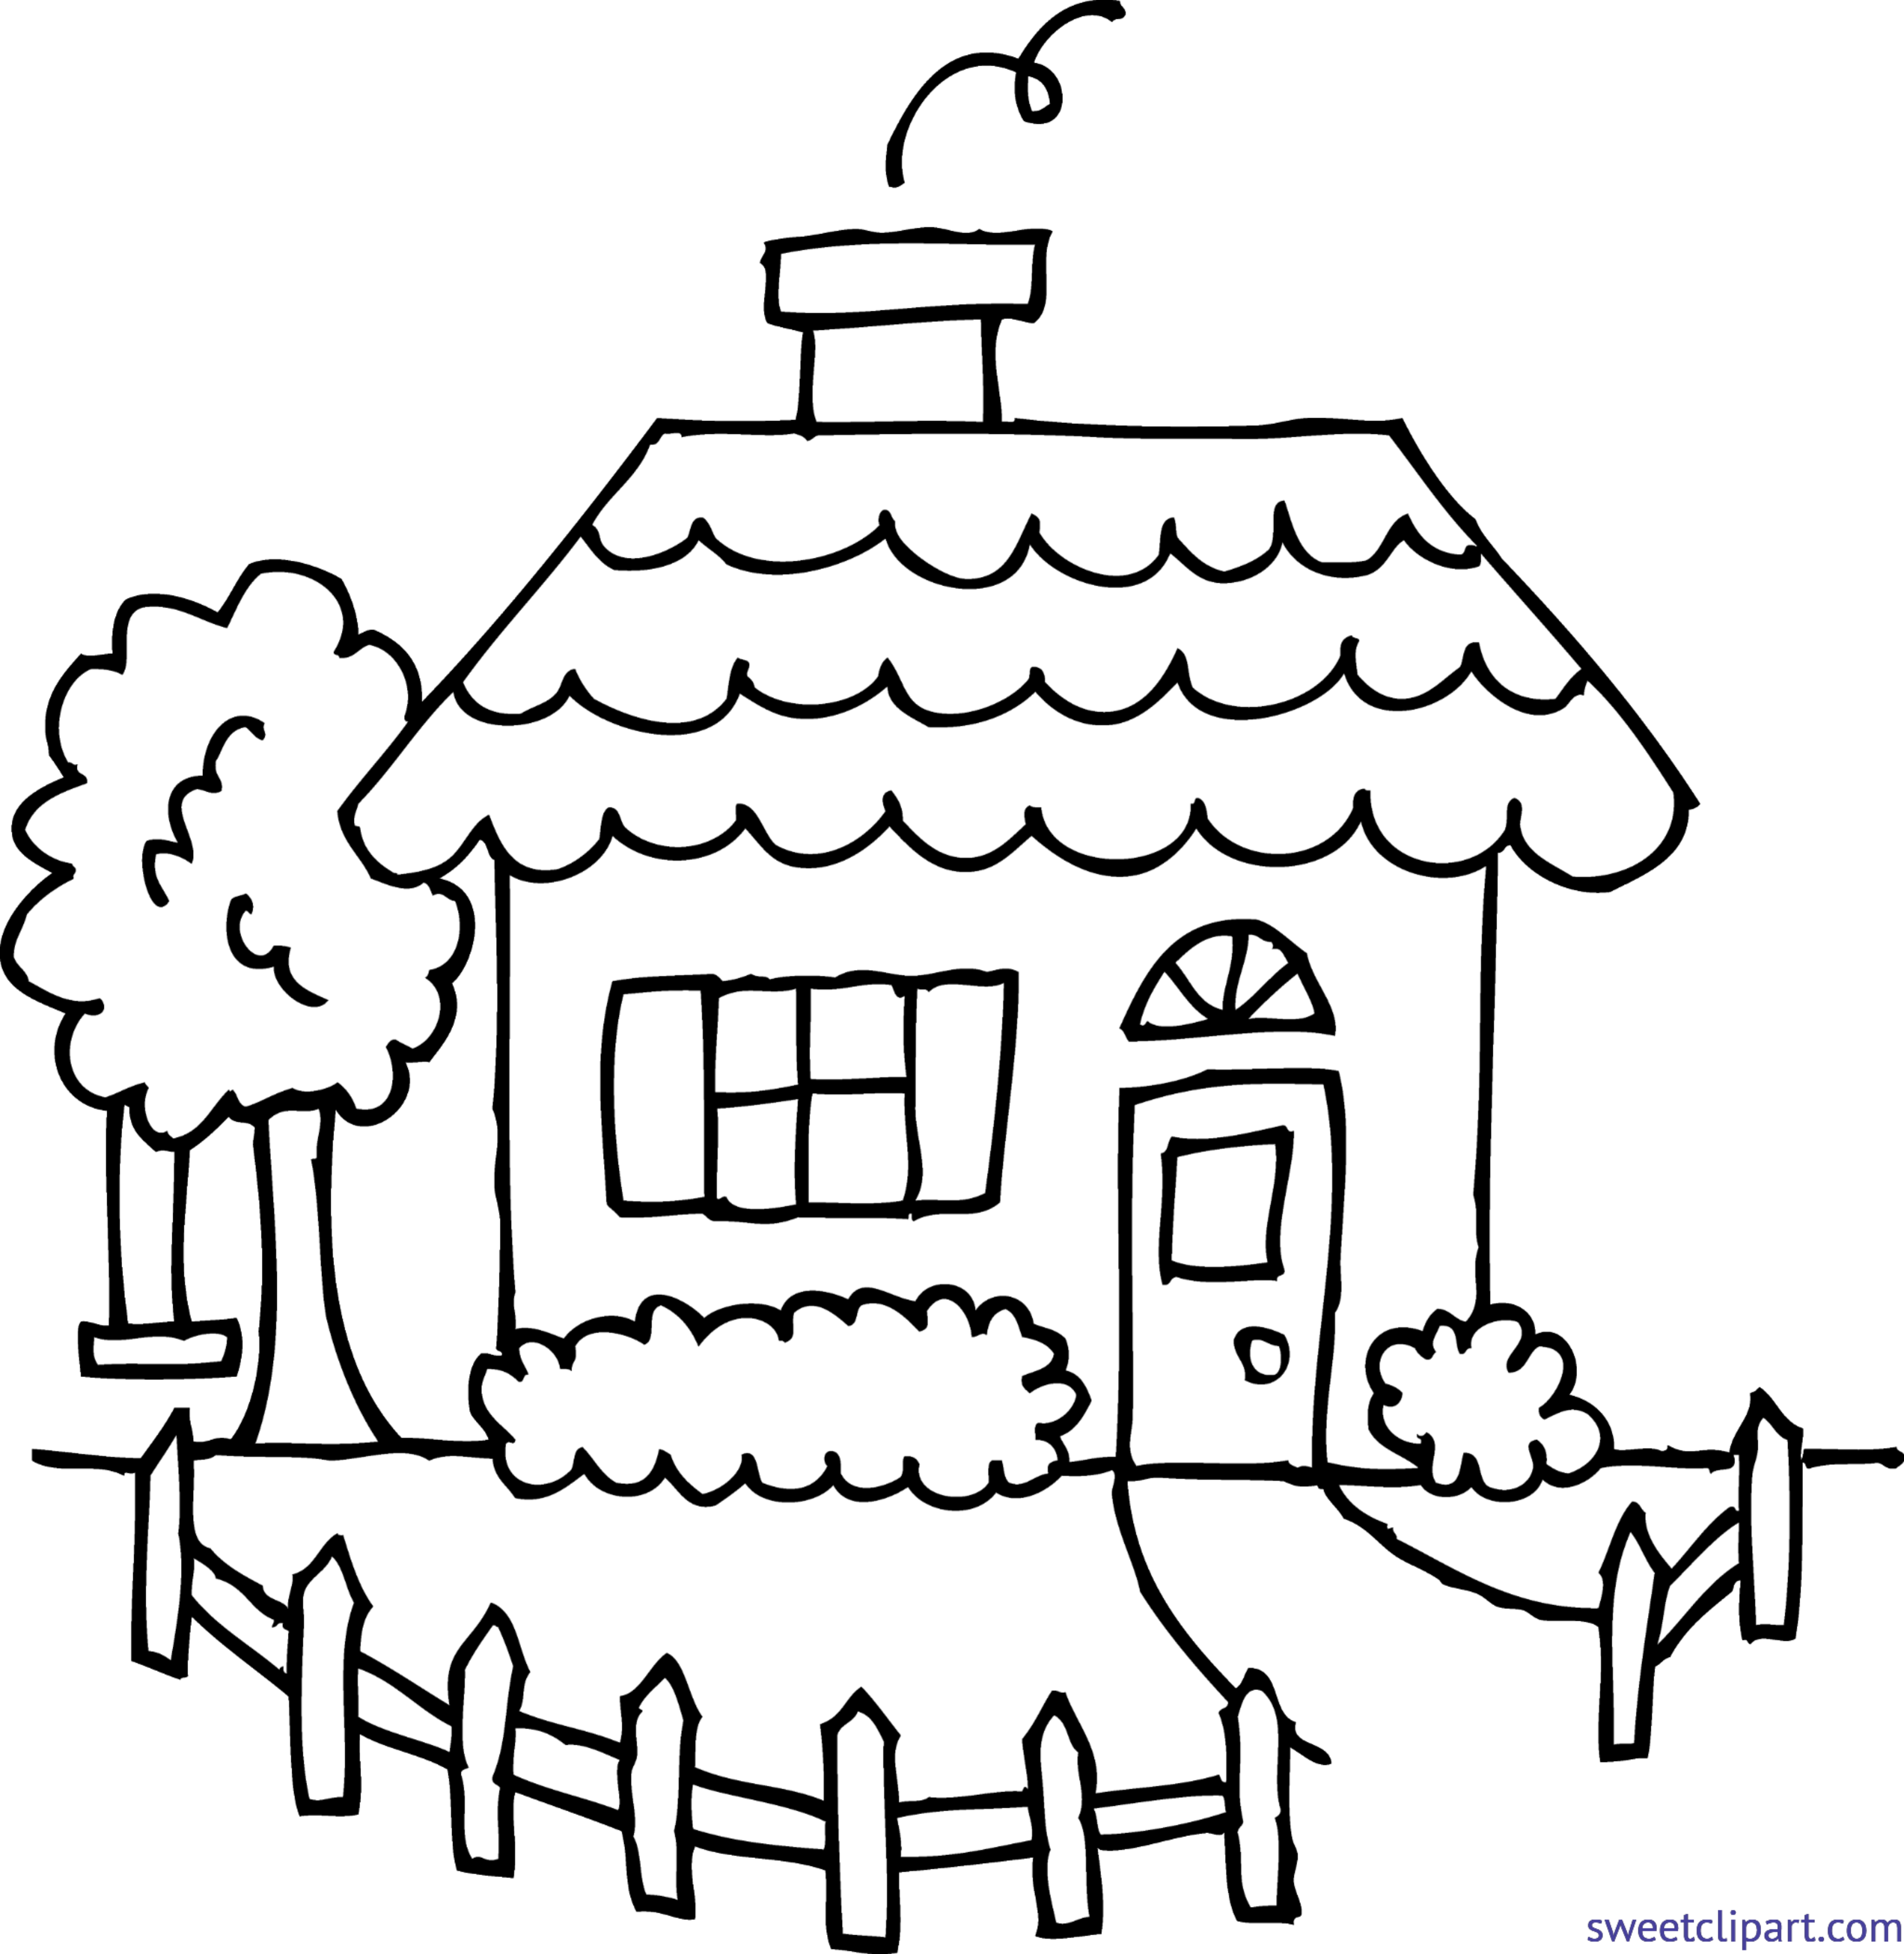 Cute House 1 Coloring Page Clip Art - Sweet Clip Art